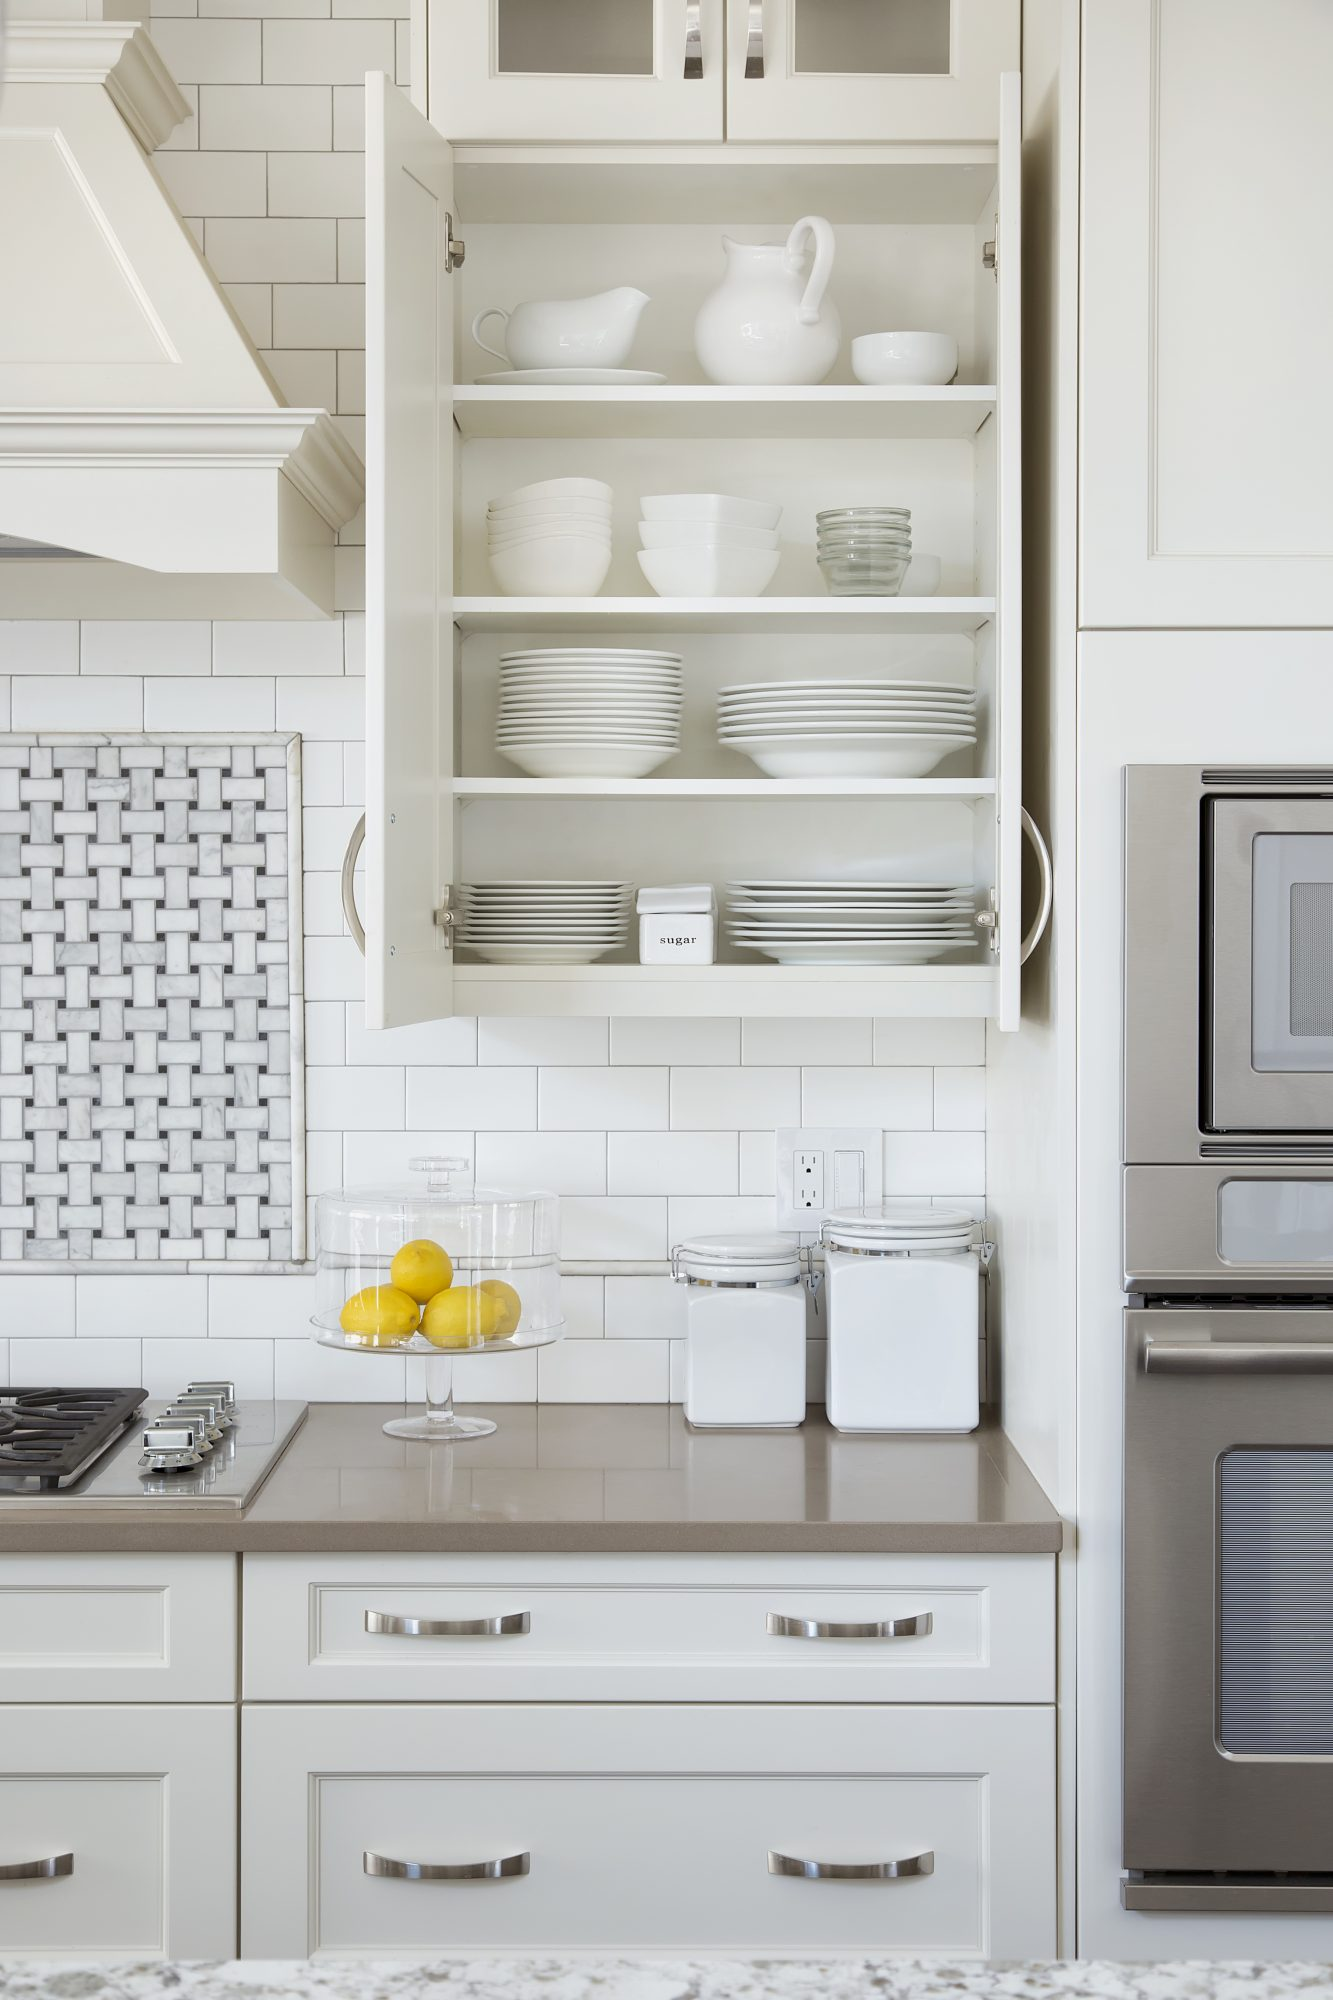 24 Smart Organizing Ideas for Your Kitchen - Real Simple on organized kitchen cabinets, clean kitchen cabinets, before and after kitchen cabinets, glazed kitchen cabinets, dish organizers in kitchen cabinets, distressed kitchen cabinets, white kitchen cabinets, organizing kitchen cabinets, secret stash kitchen cabinets,